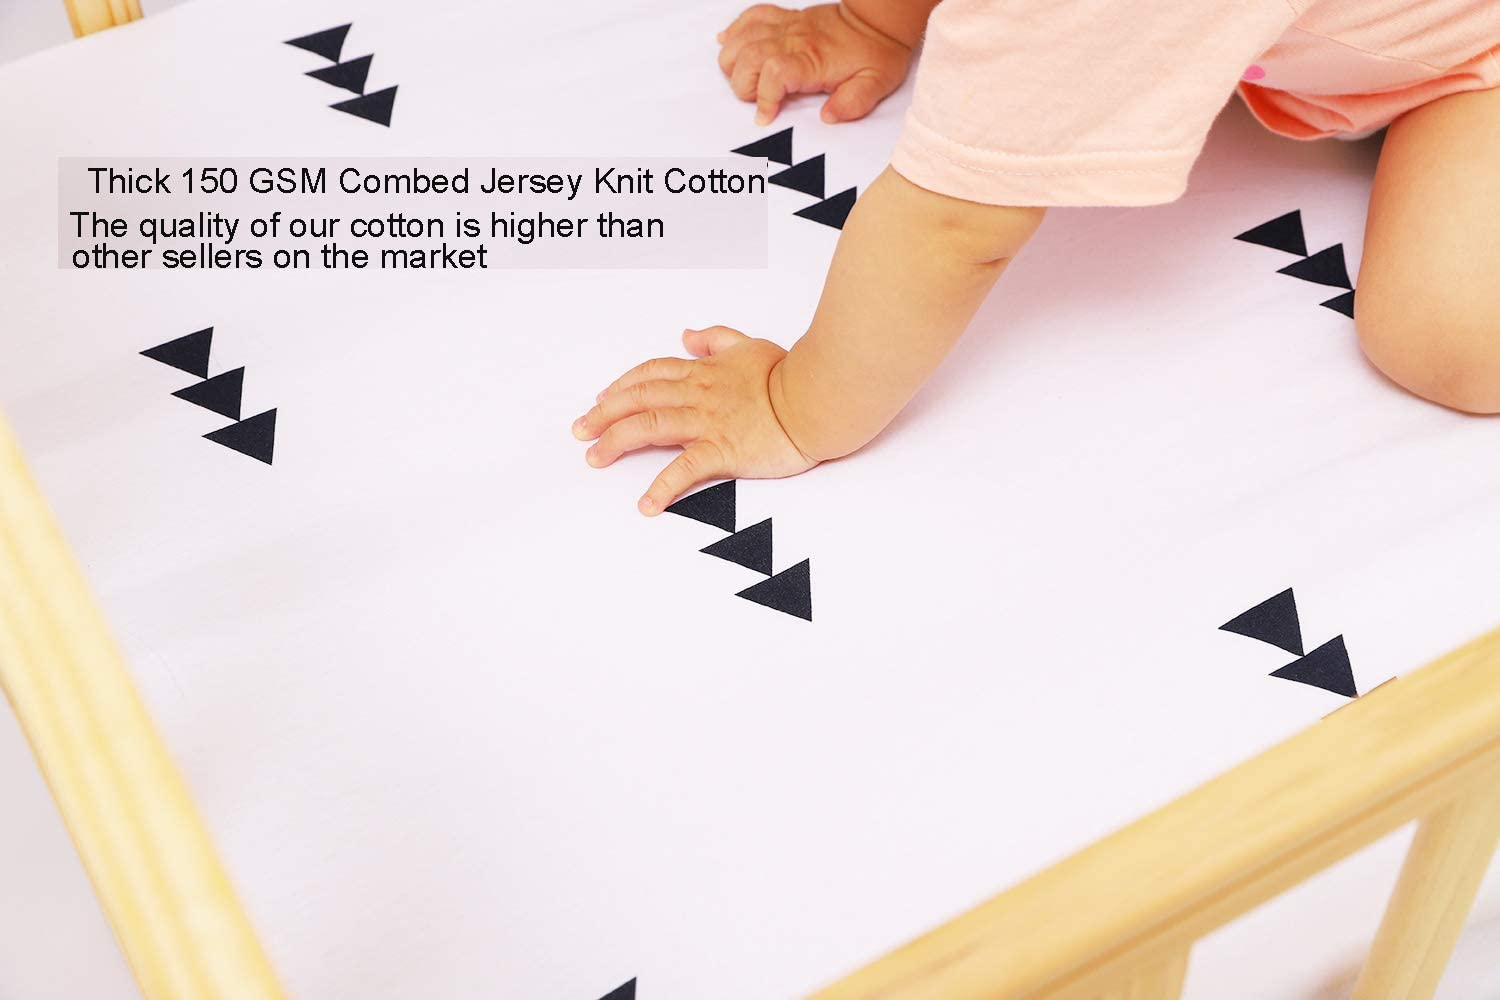 Bassinet Sheet Set 2 Pack 100/% Jersey Knit Cotton Ultra Soft and Stretchy for Baby Girl Boy Grey Arrows and Black Triangles by Knlpruhk